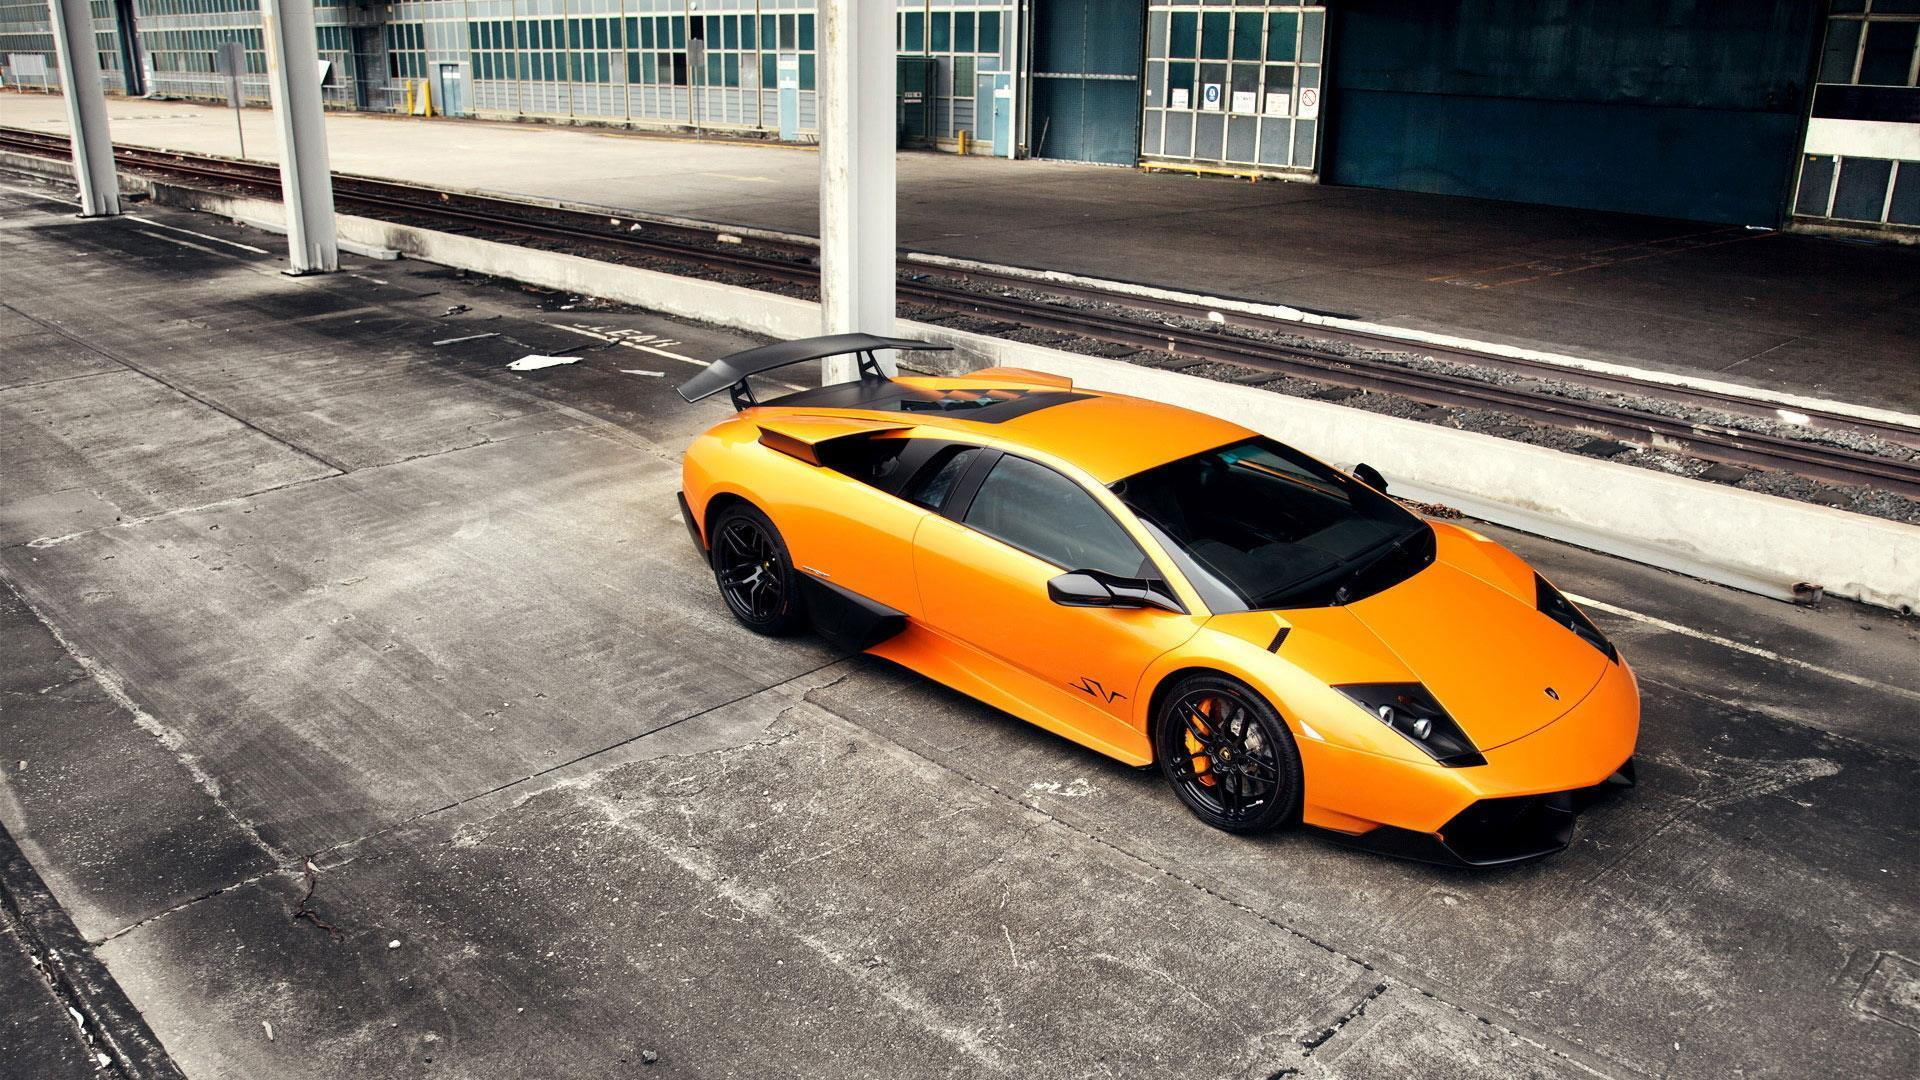 Yellow Color Cars Wallpapers For Android Apk Download